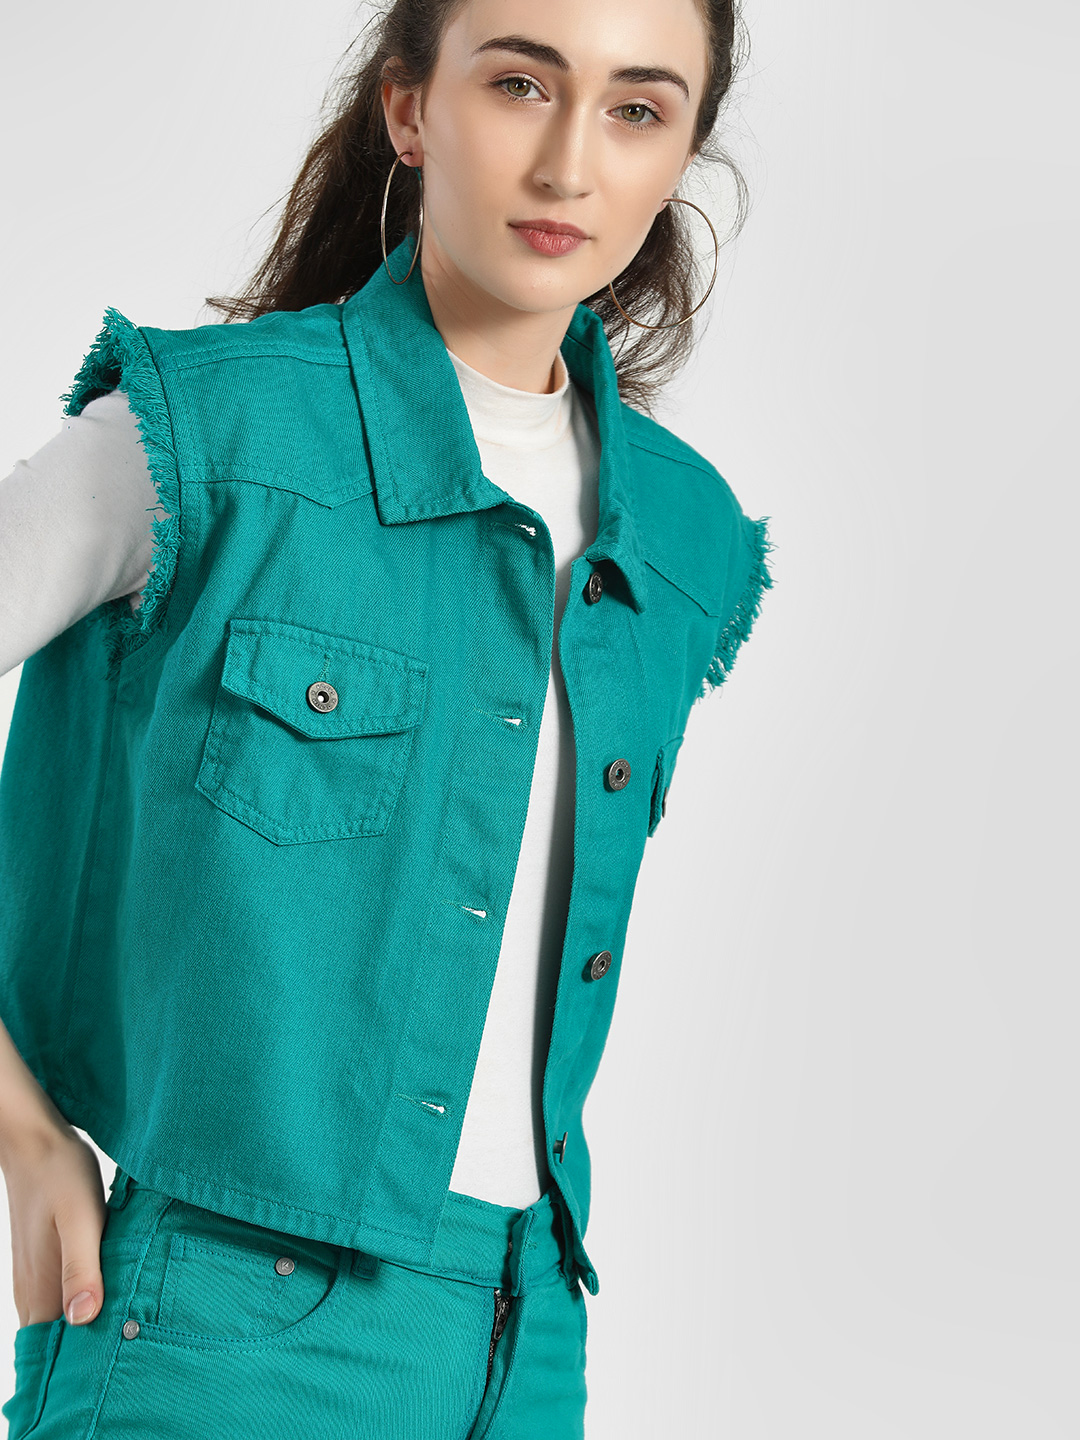 K Denim Green KOOVS Frayed Hem Crop Jacket 1